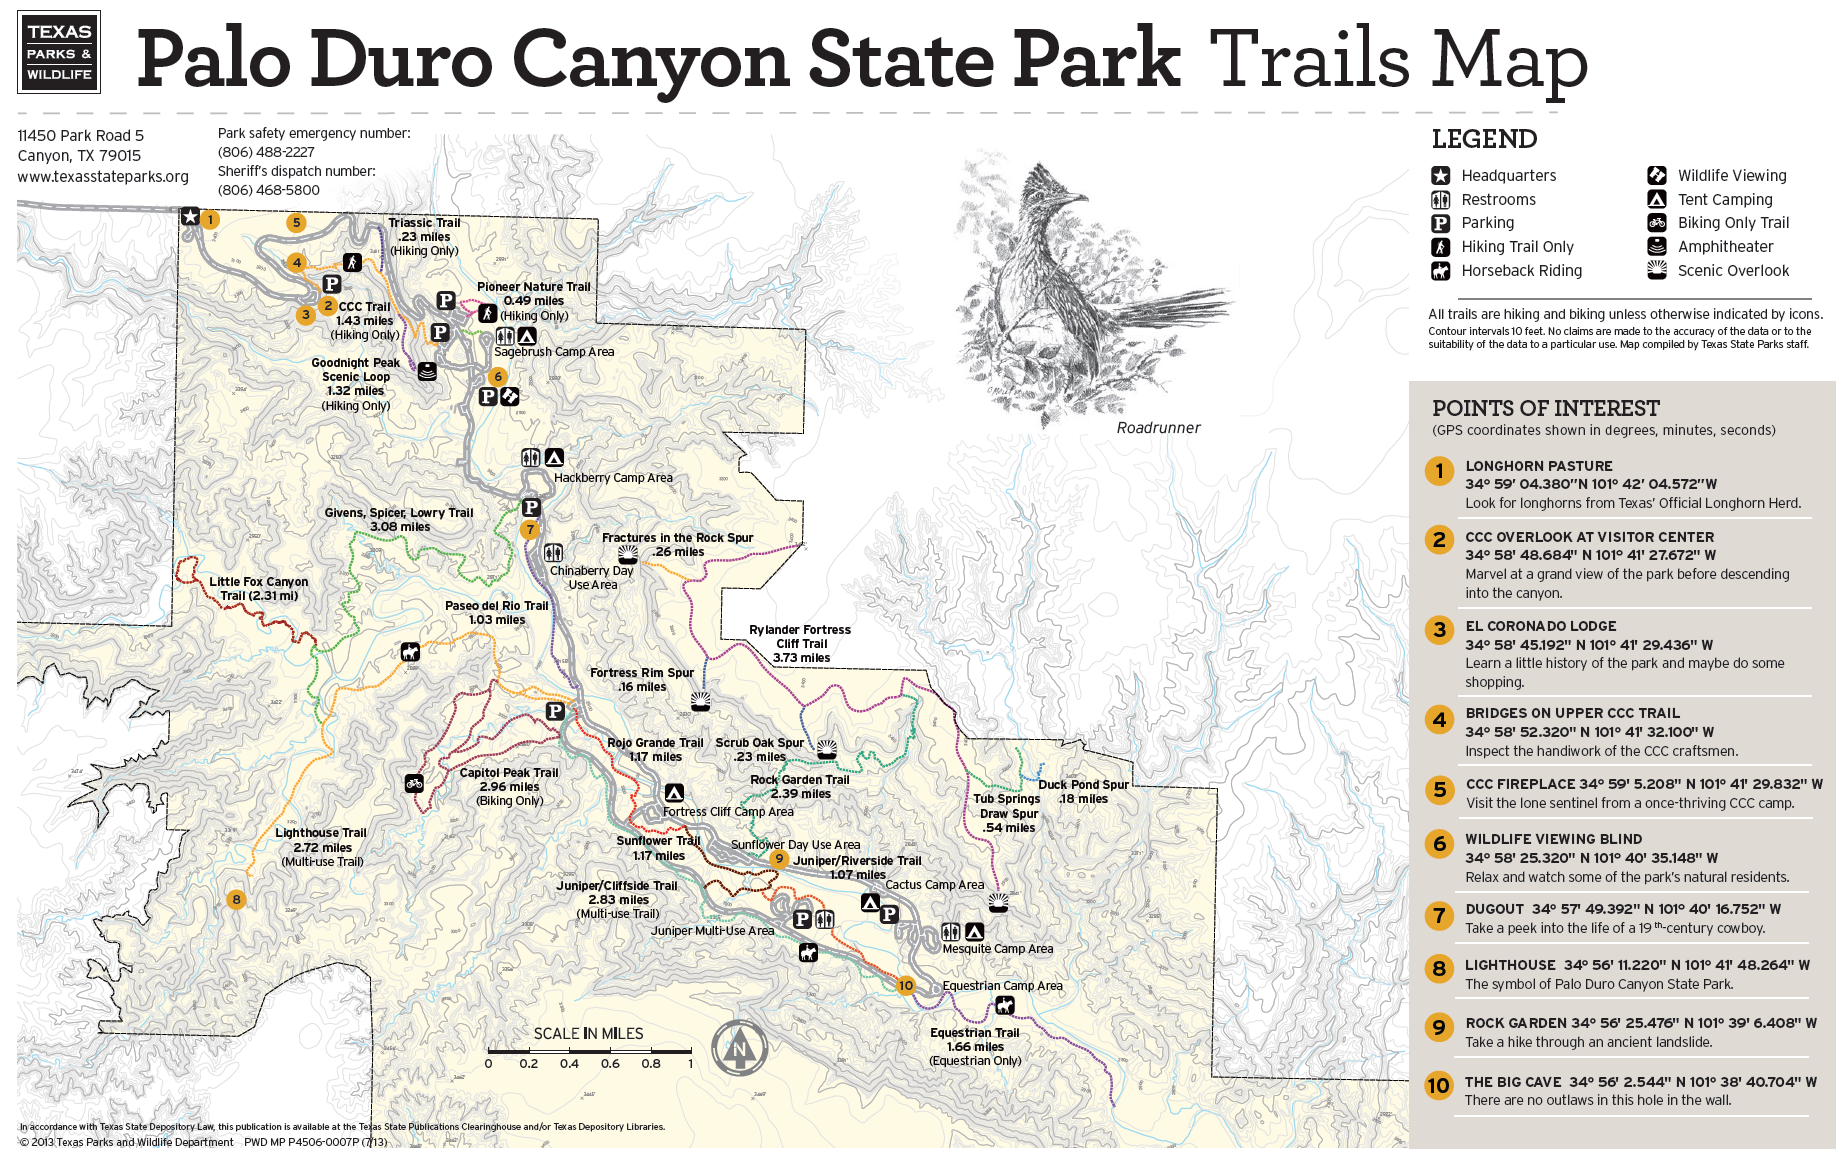 Palo Duro Canyon Texas Map PDC trail map | Palo duro canyon, Palo duro, State parks